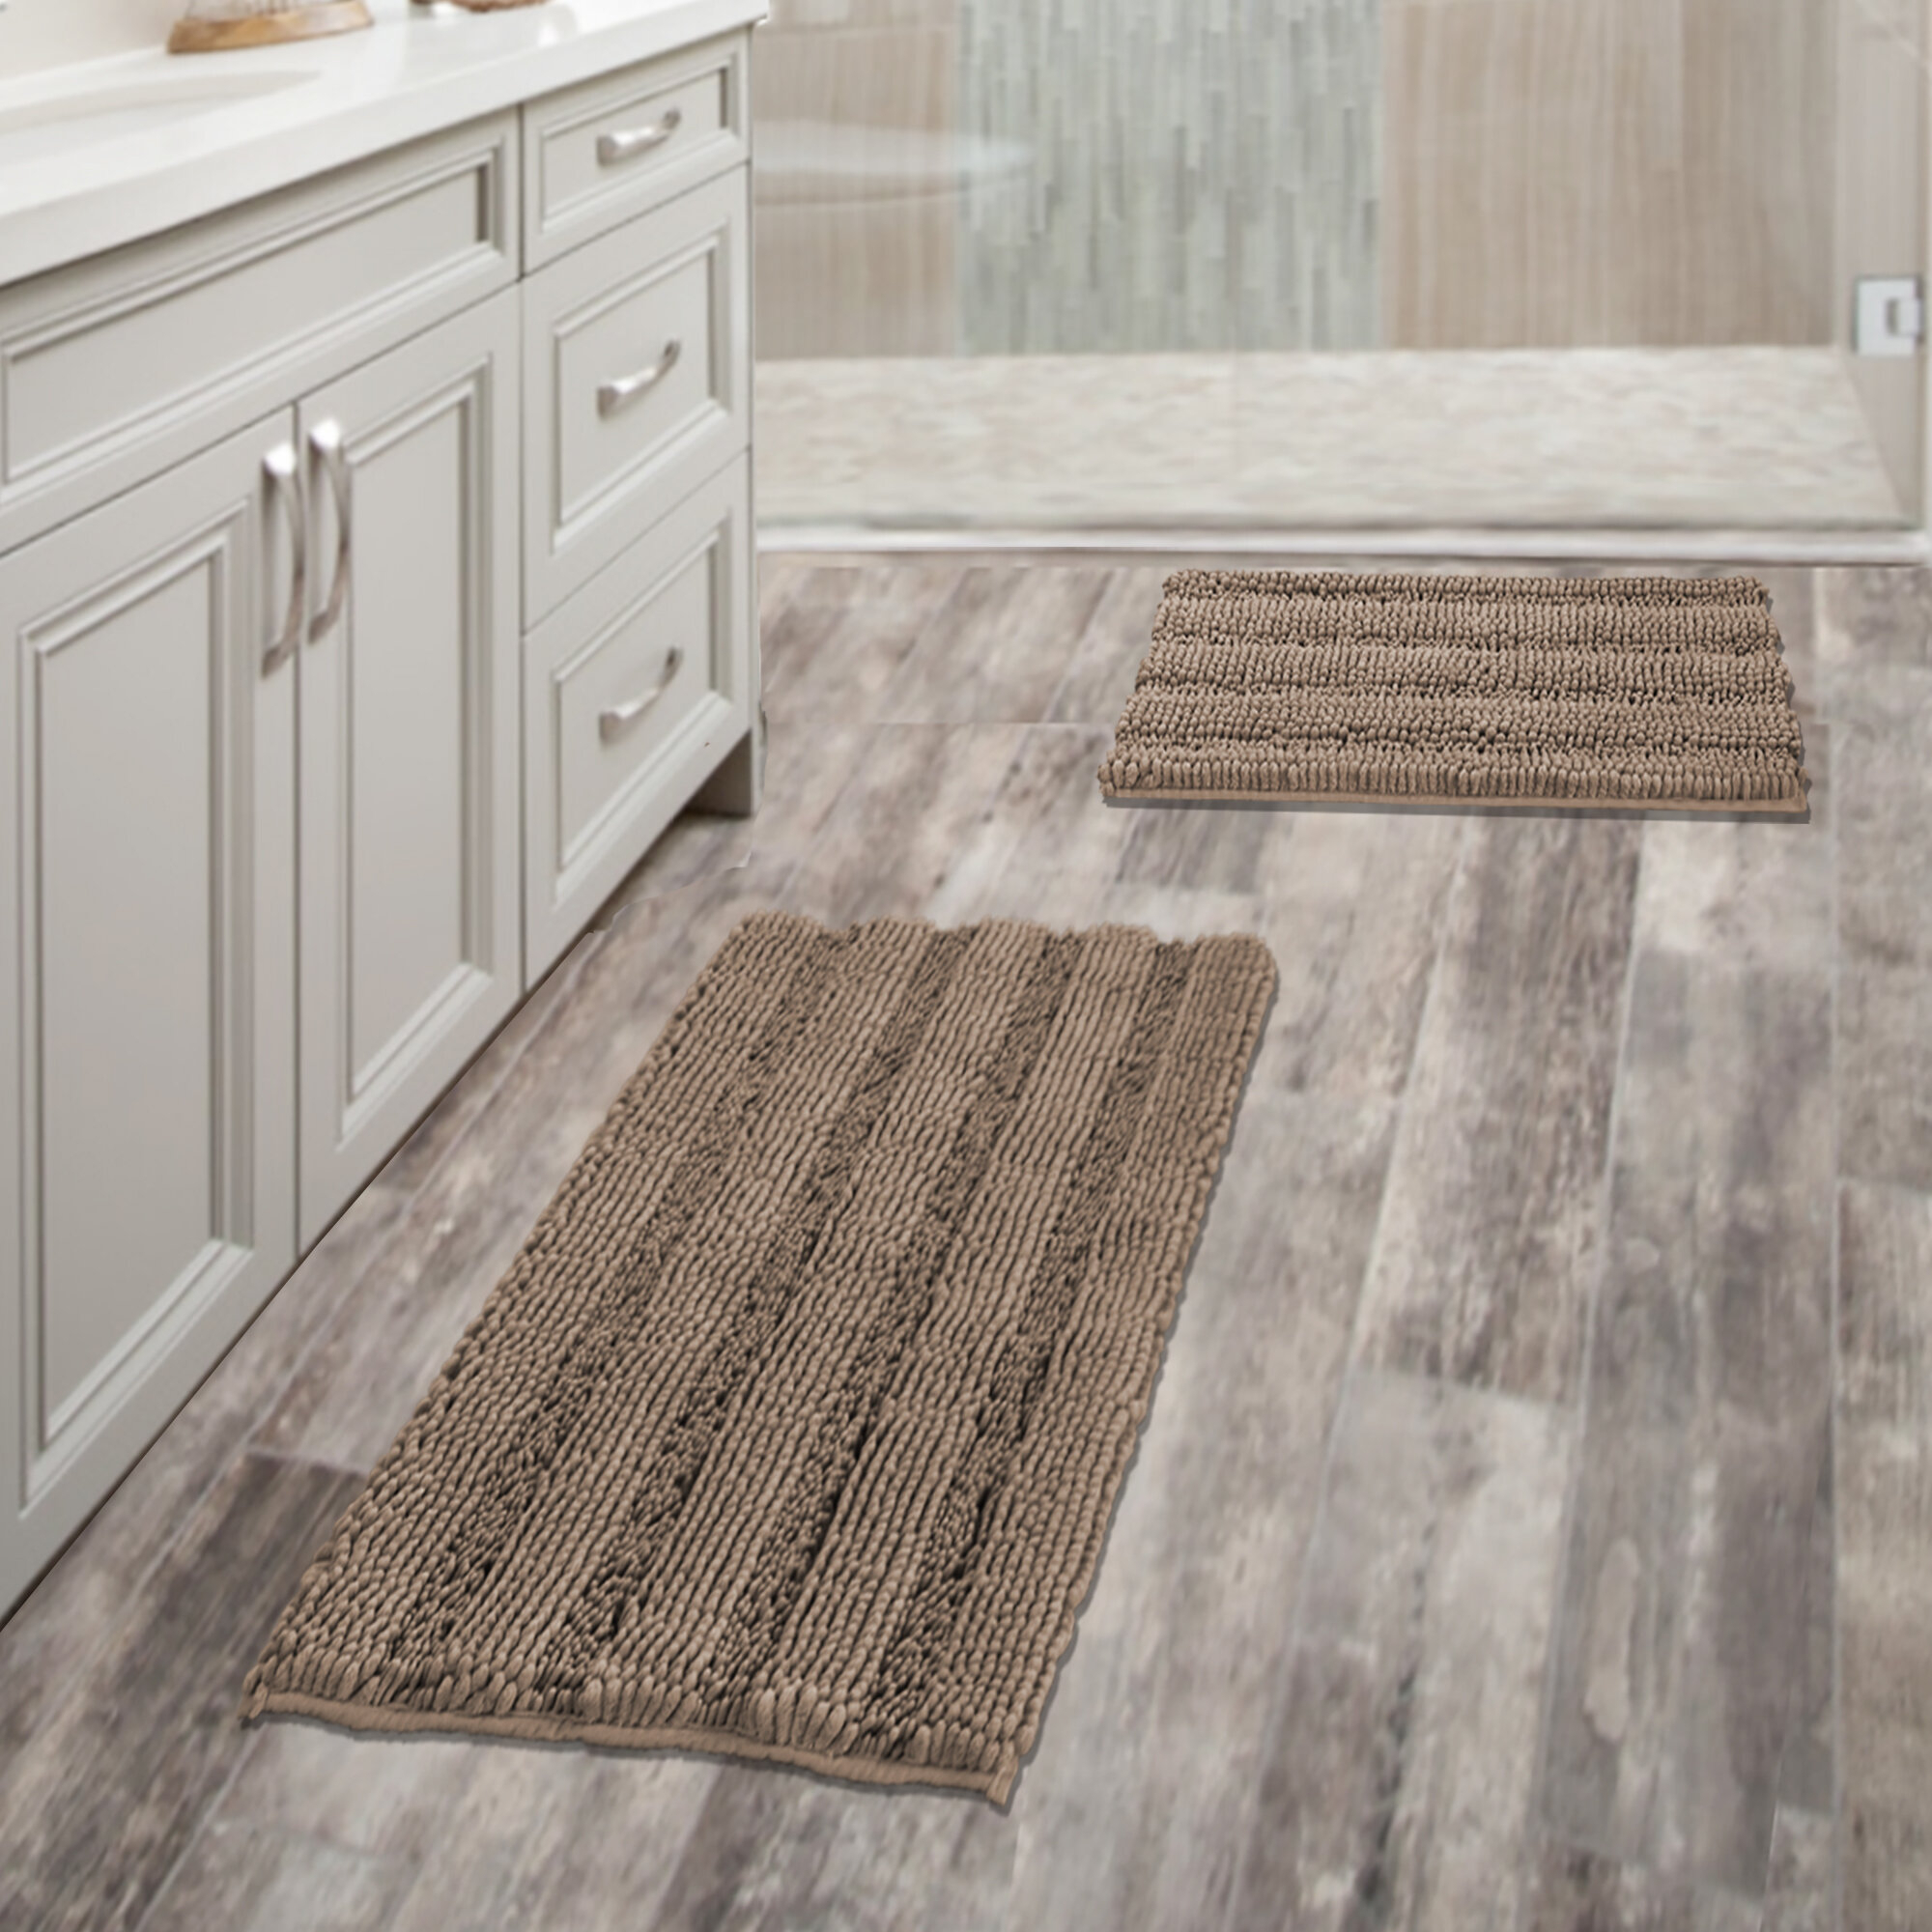 5 Expert Tips To Choose Bath Rugs Mats Visualhunt